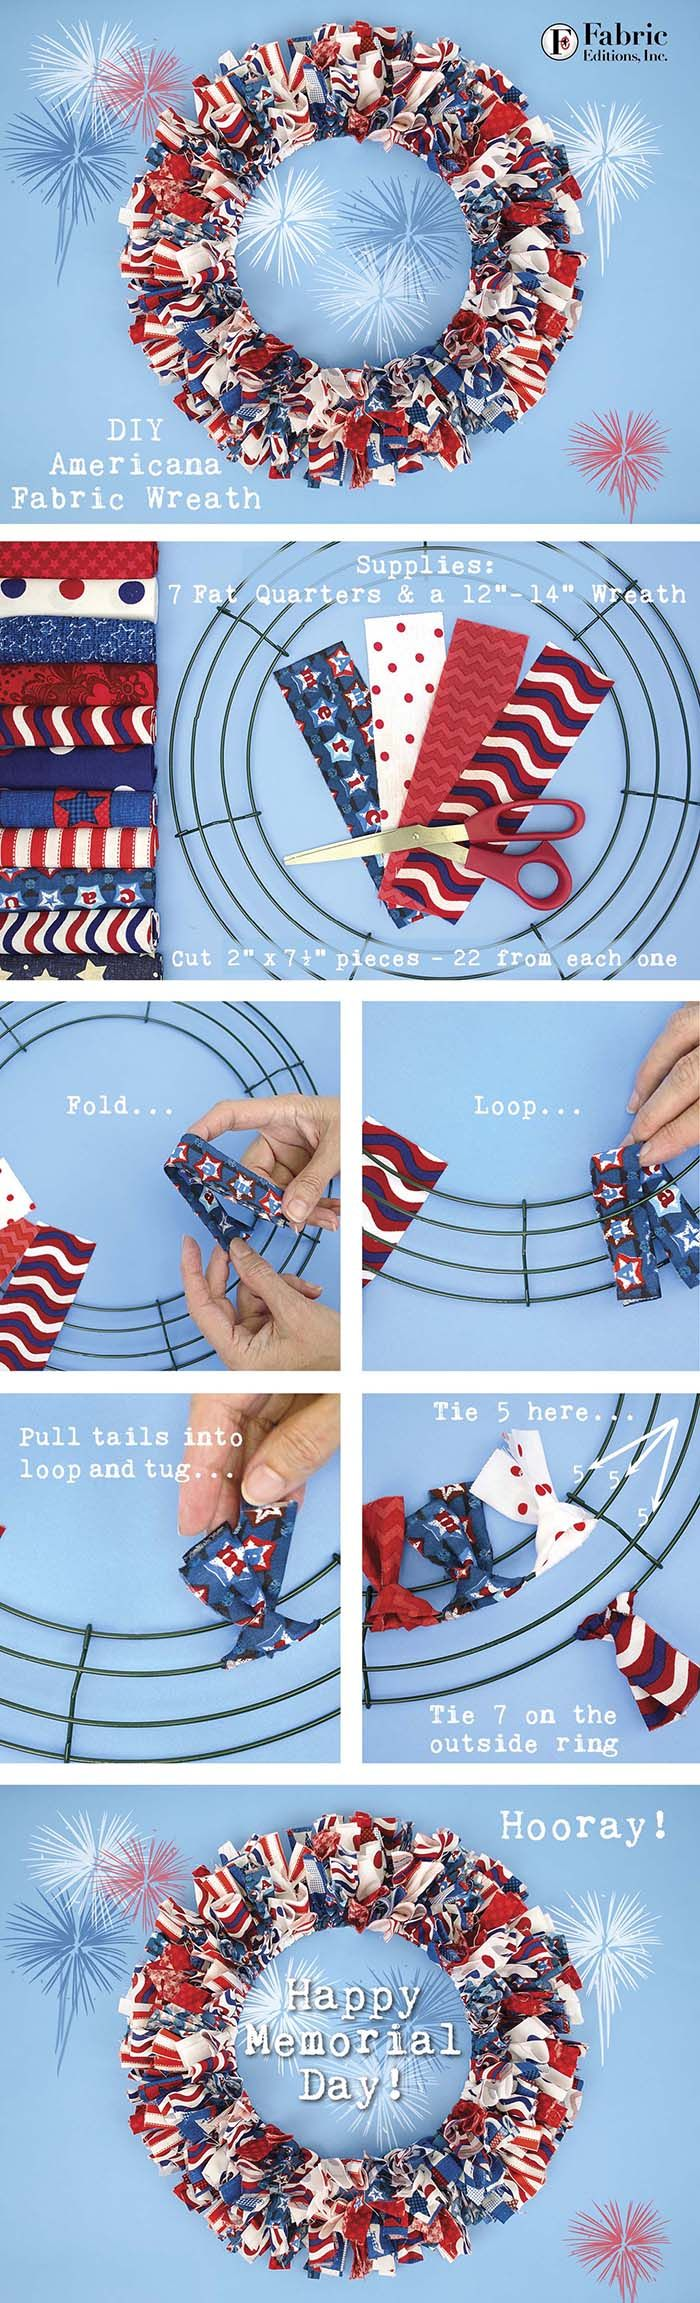 Summer 2016 is quickly arriving, so time to start those red, white and blue projects!Fabric Editionsdesigned a great selection of Americana singles this year. Fresh prints, polka dots, and really good reds! Today I'm featuring these found in Meijer's stores. Take a look at this little DIY pictorial to see how easy it is. You…